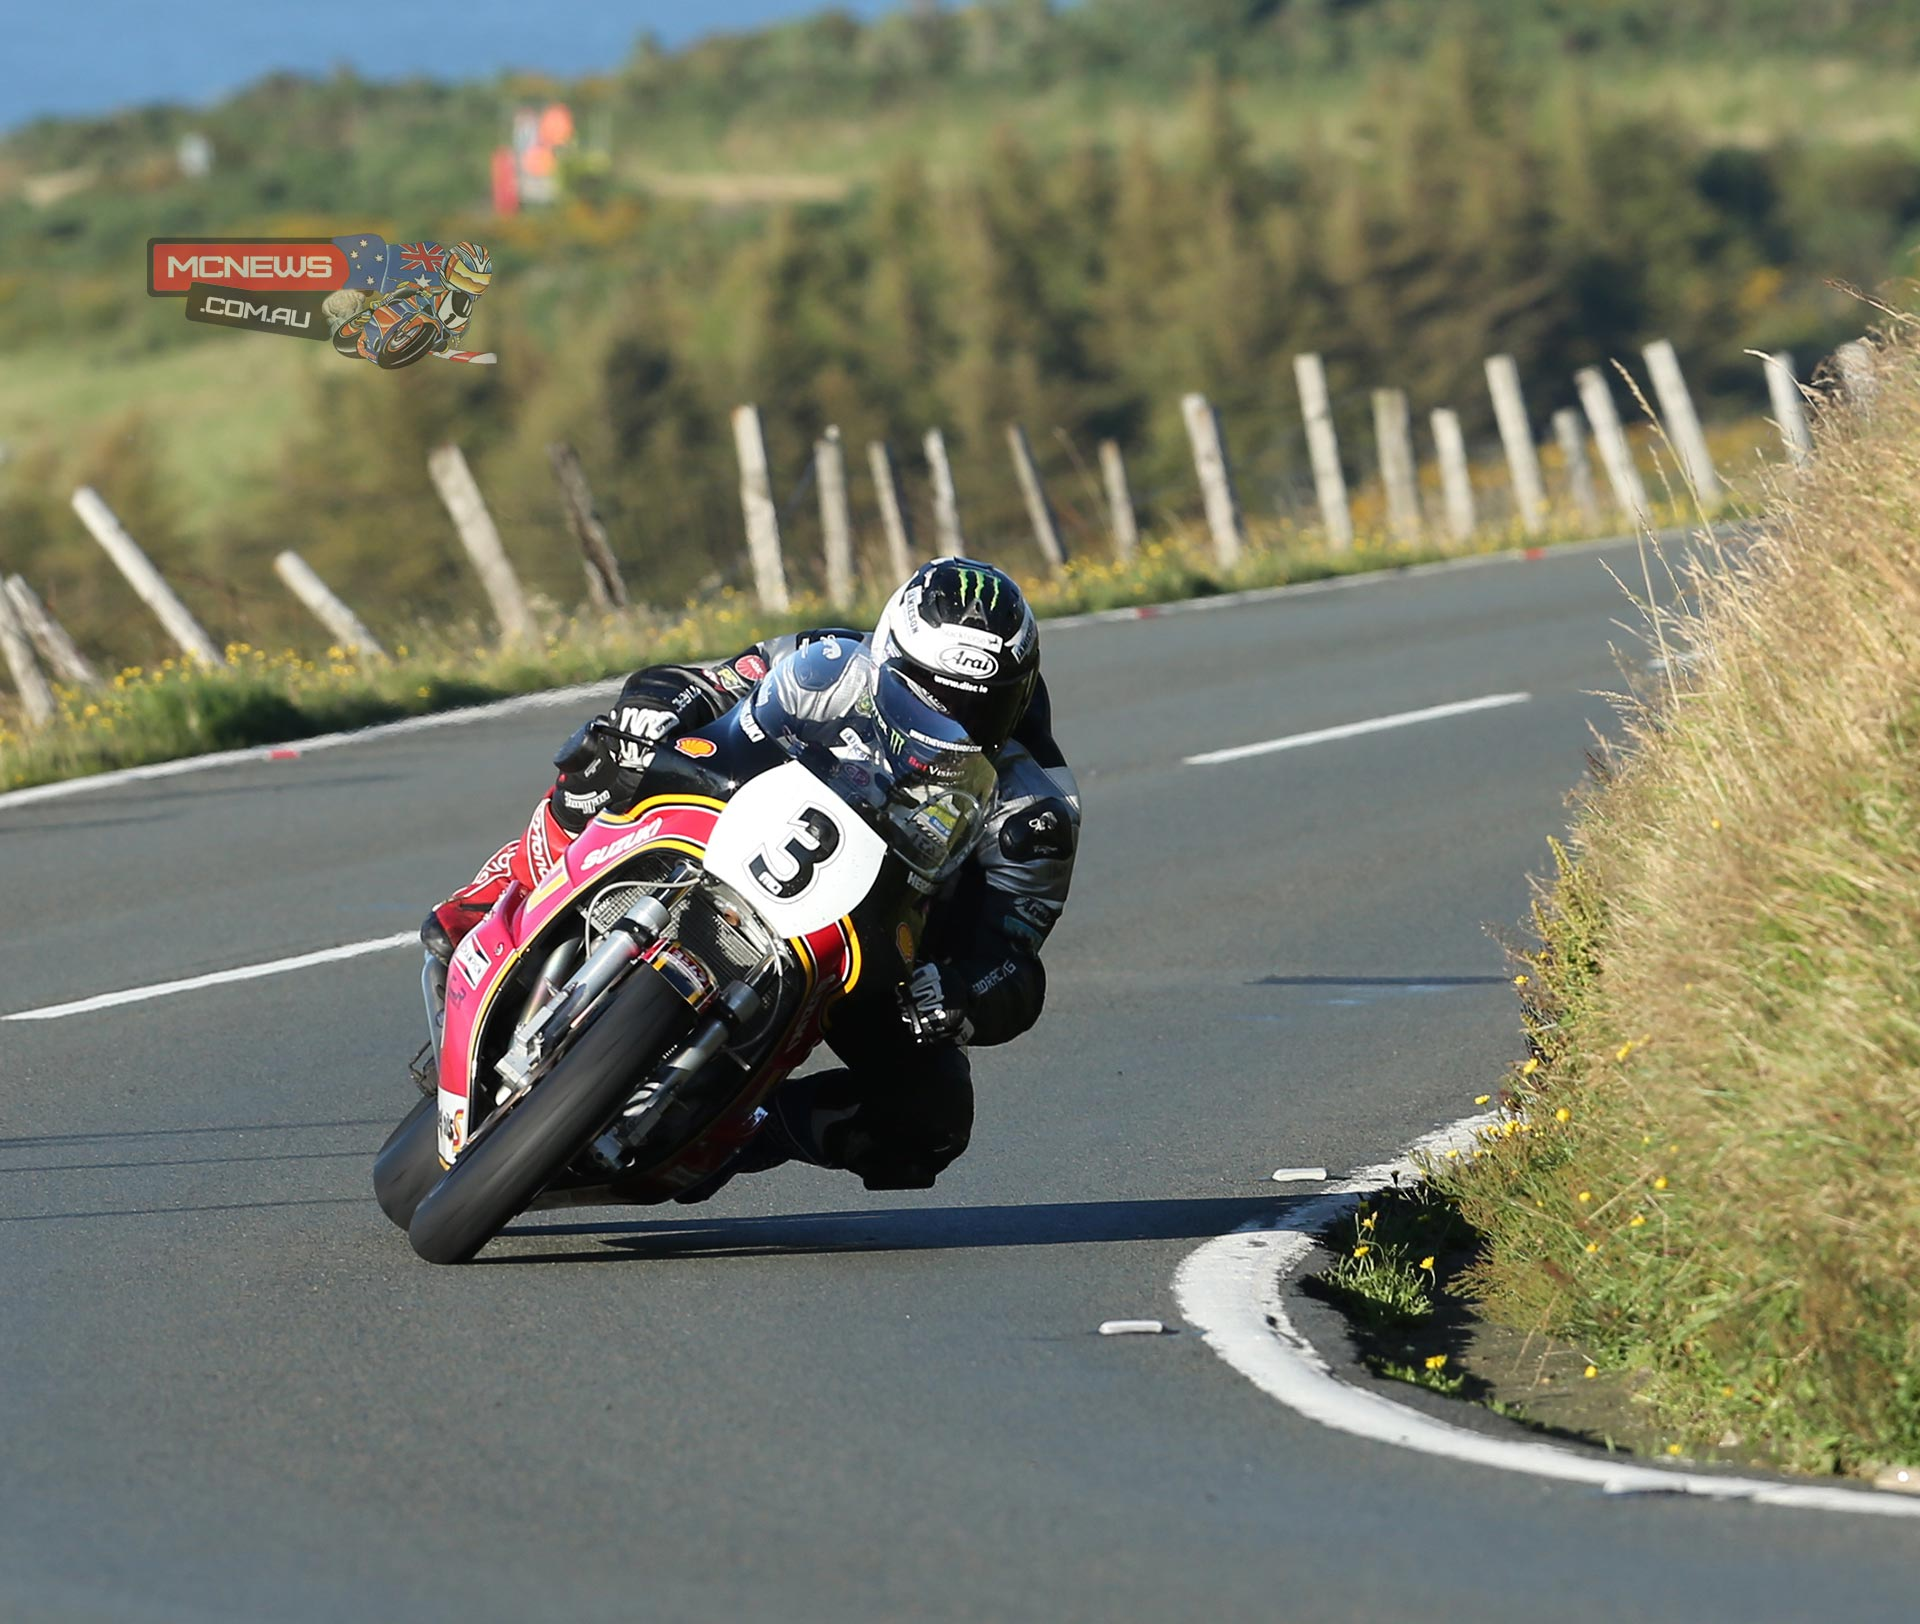 Michael Dunlop in action during Thursday's Classic TT qualifying session